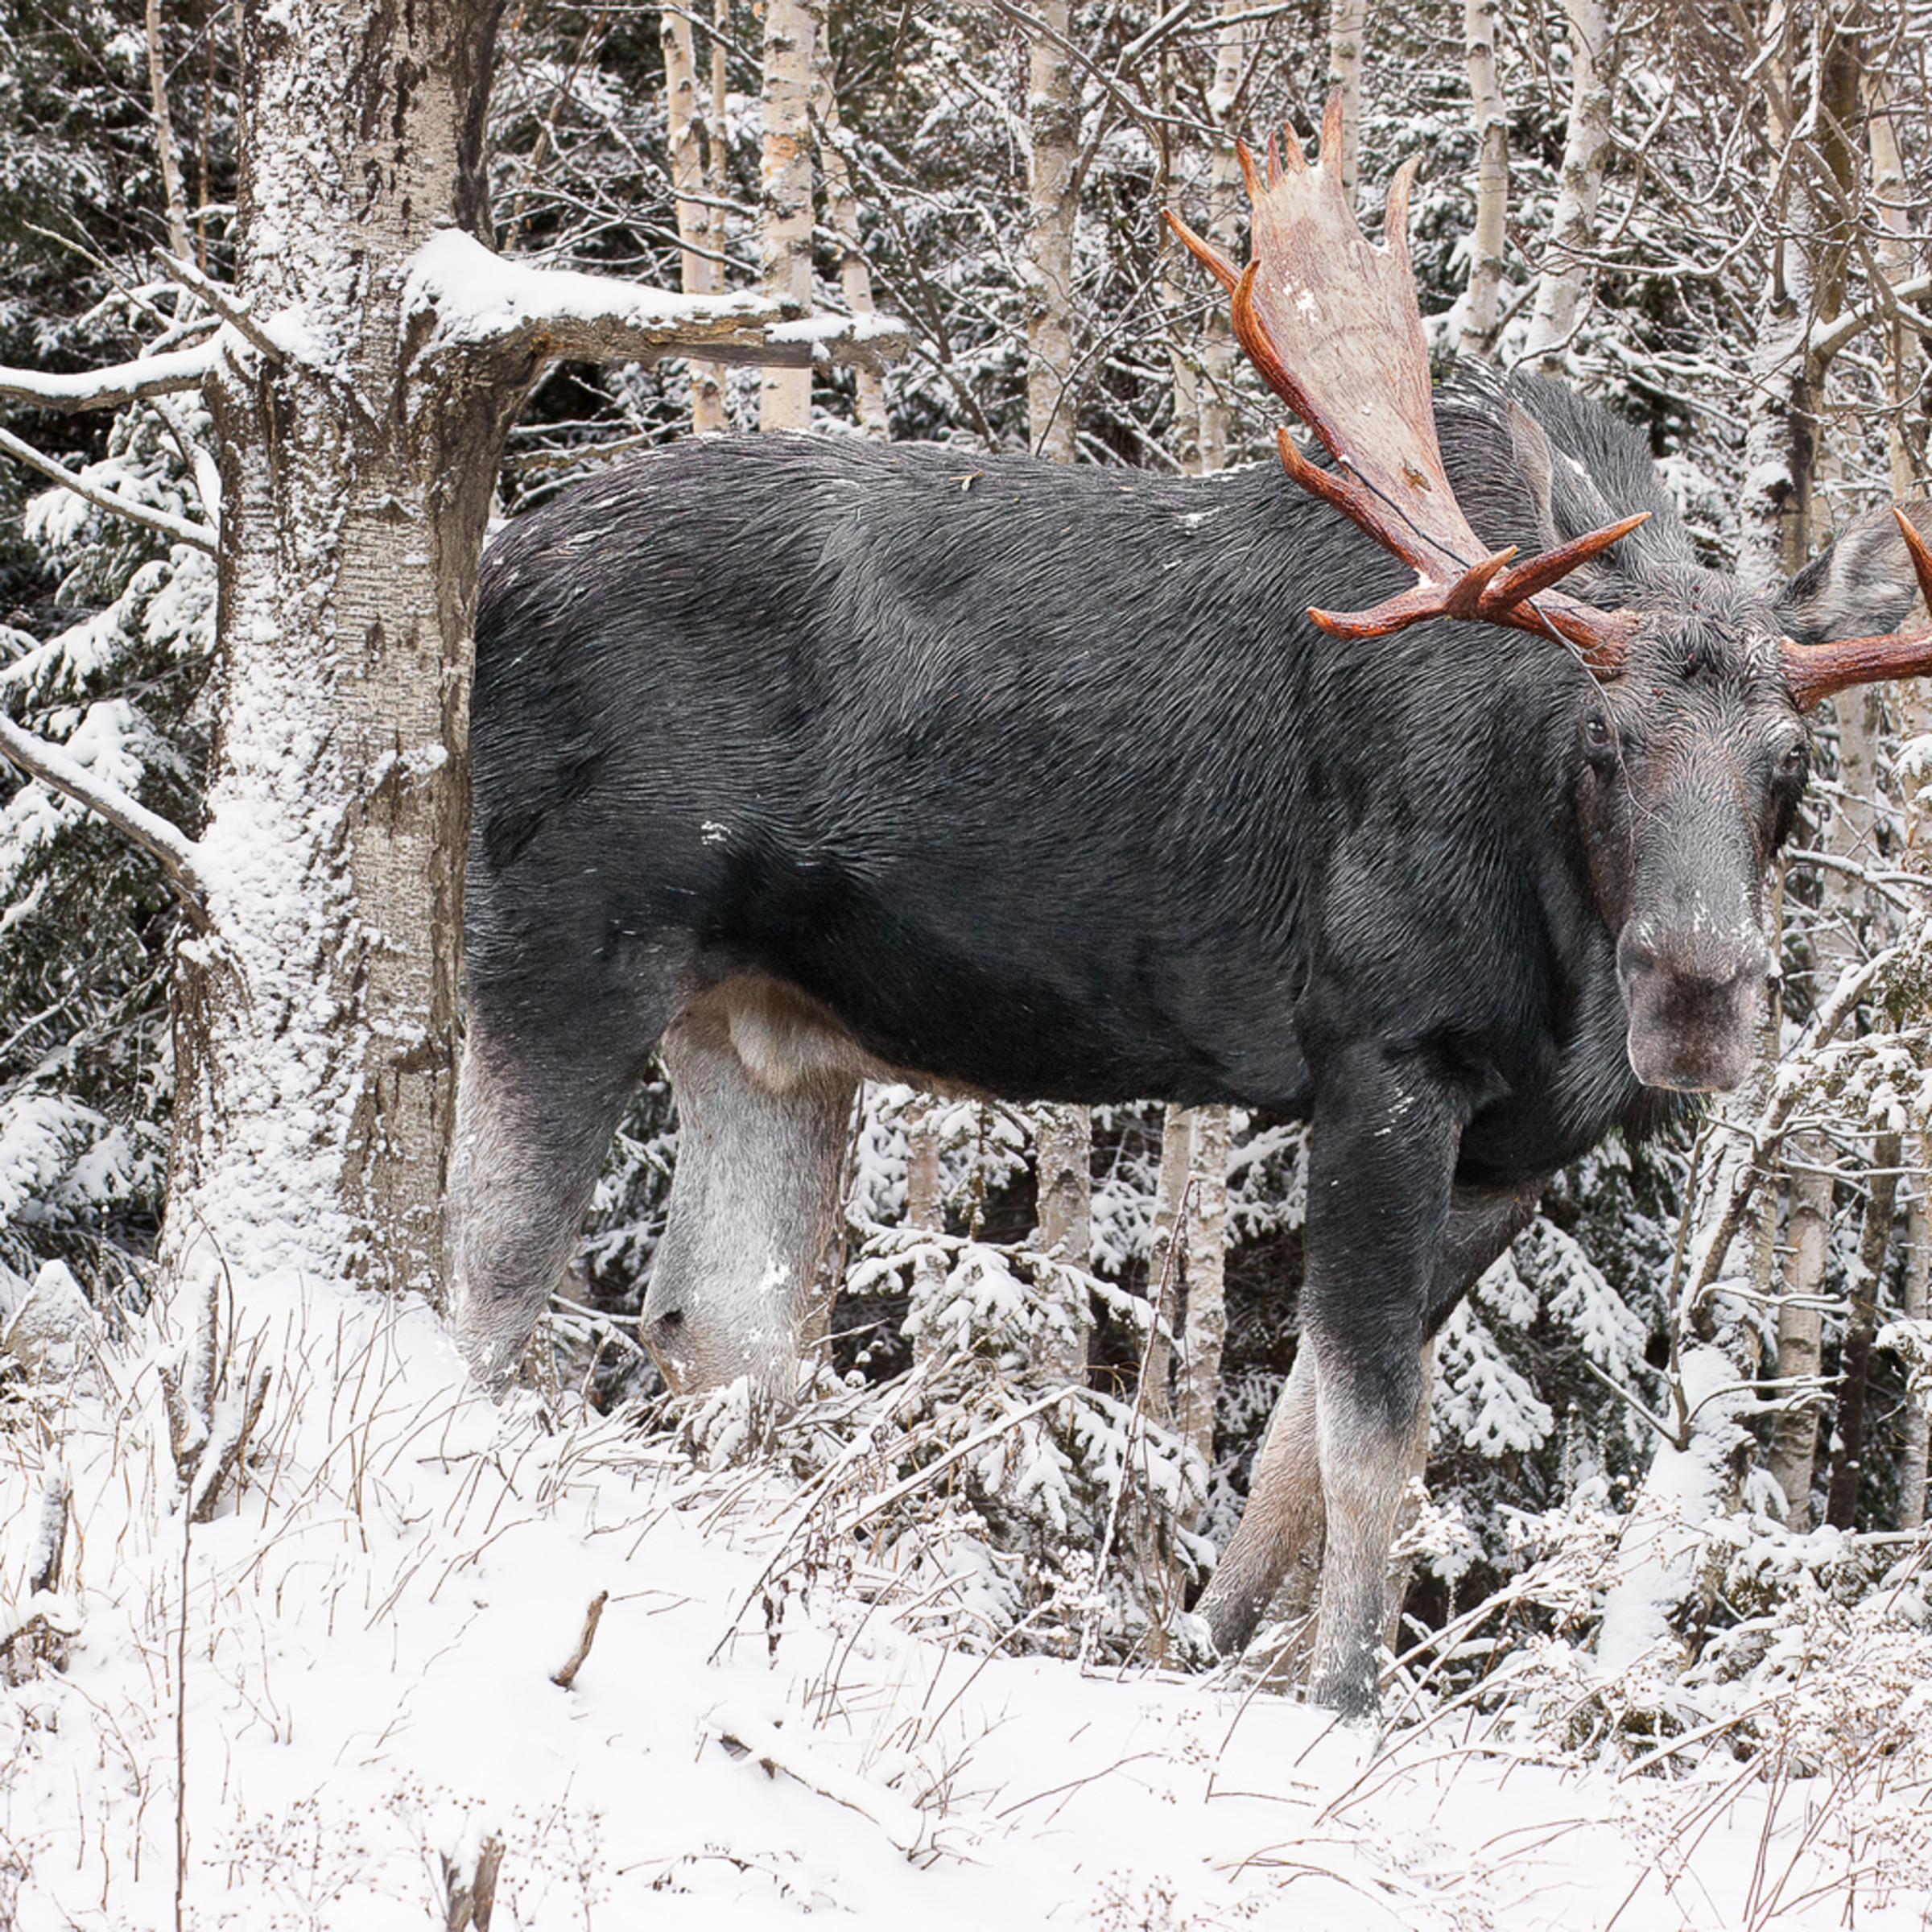 Bull moose behind snowy birches pmlc3c